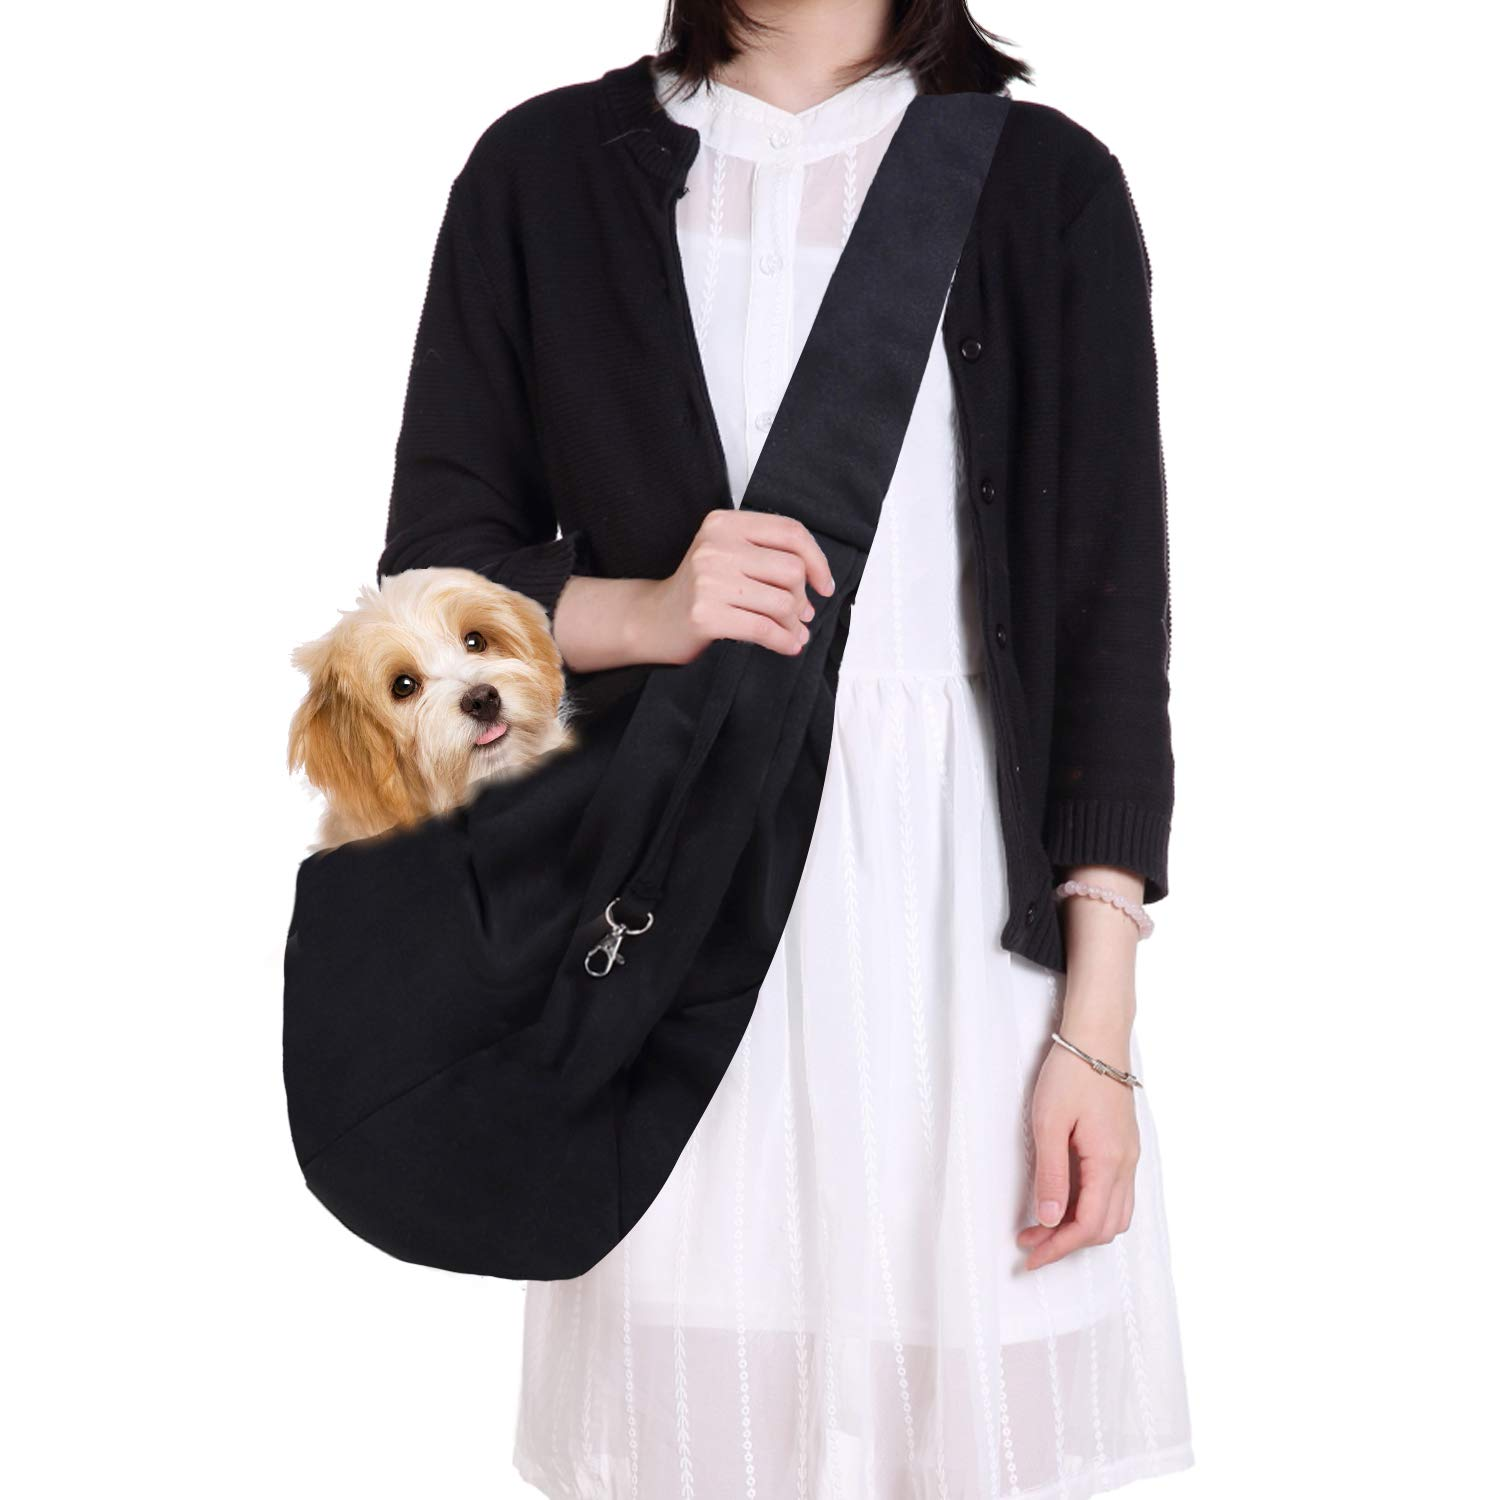 Black swee Hands-Free Reversible Pet Dog Cat Sling Carrier Bag Travel Tote Soft Comfortable Puppy Kitty Rabbit Double-Sided Pouch Shoulder Carry Tote Handbag (Black)